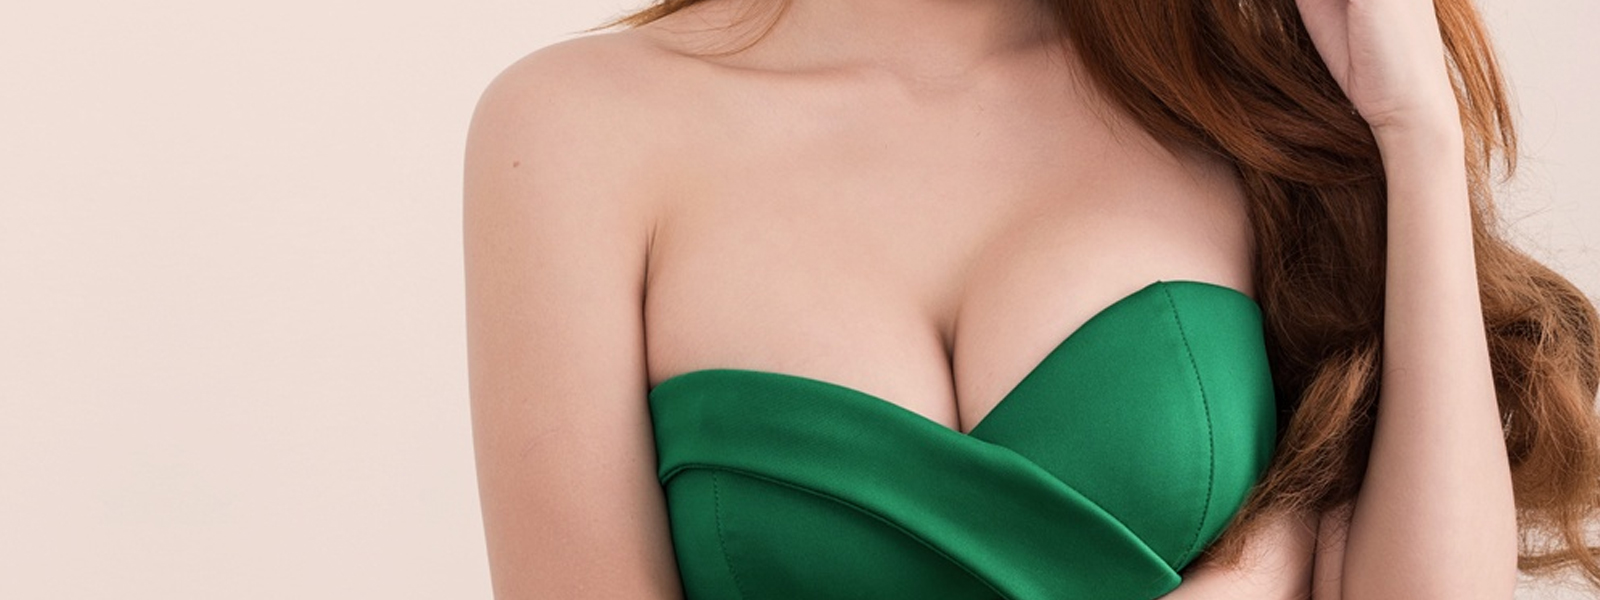 Breast Lift Without Implants: 10 Must-Know Pros & Cons